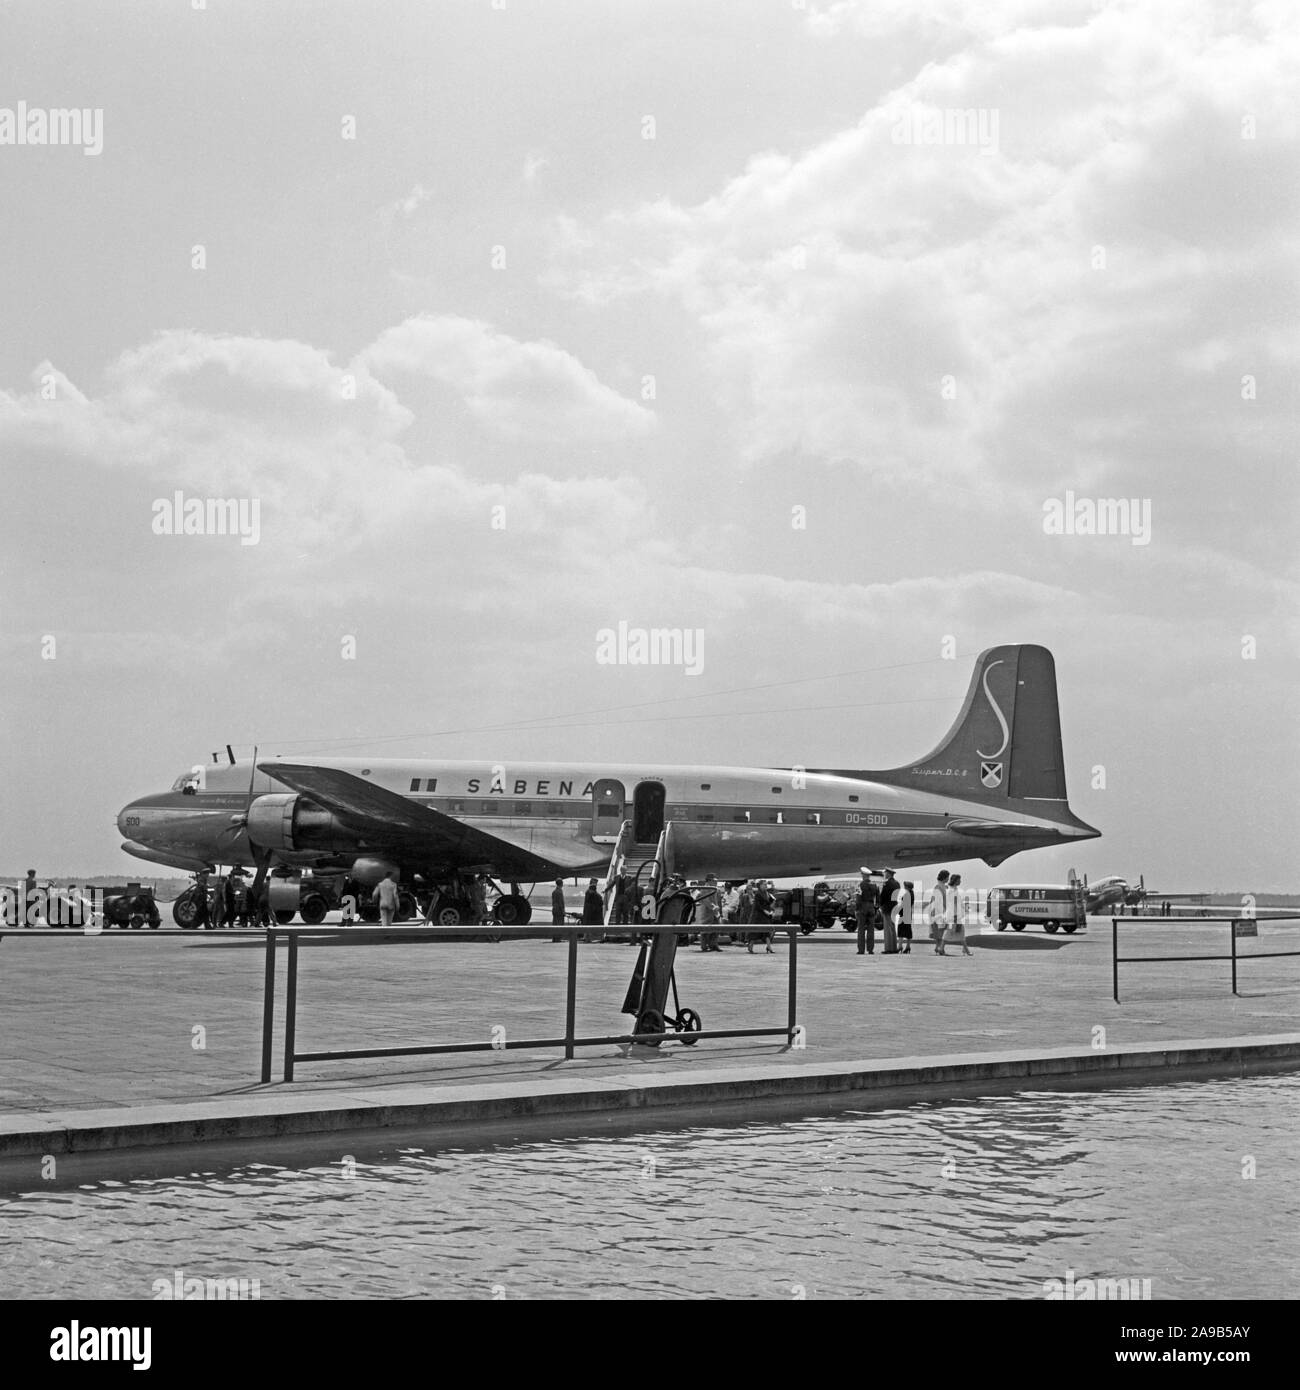 Plane of Belgian airline Sabena on the airfield of Frankfurt airport, Germany 1959 Stock Photo